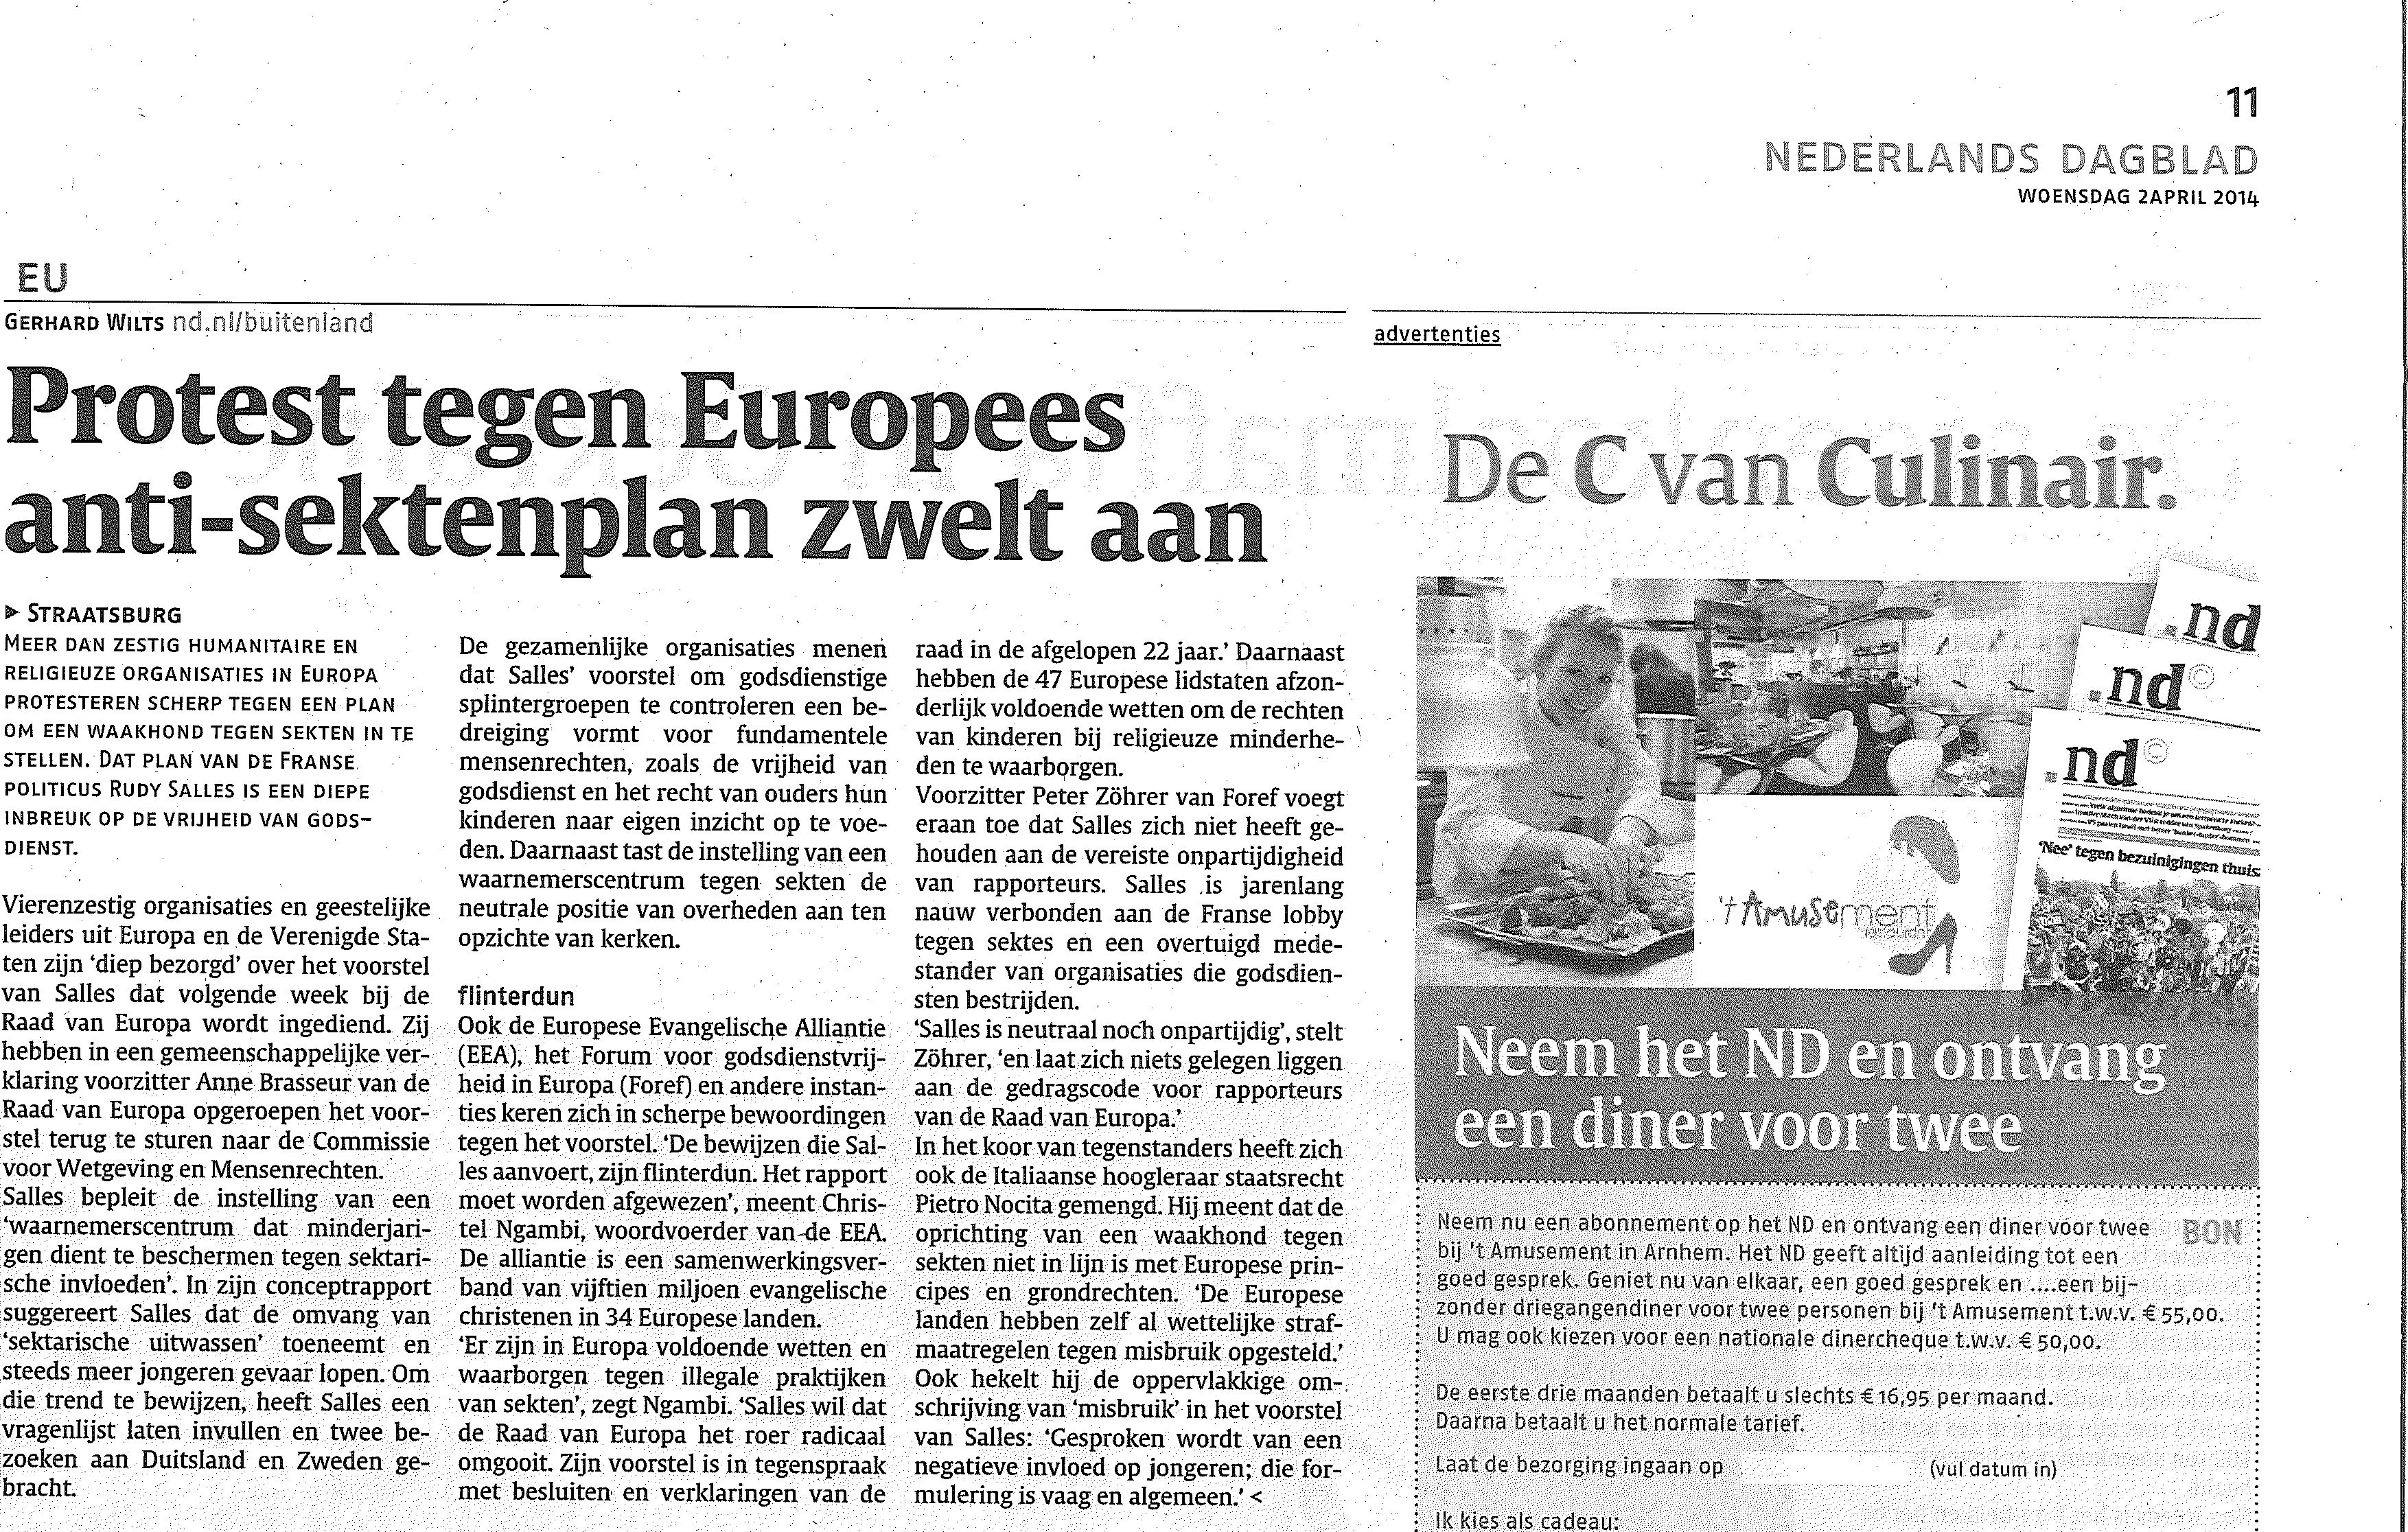 Nederlands Dagblad newspaper article on Religious Freedom at stake at PACE